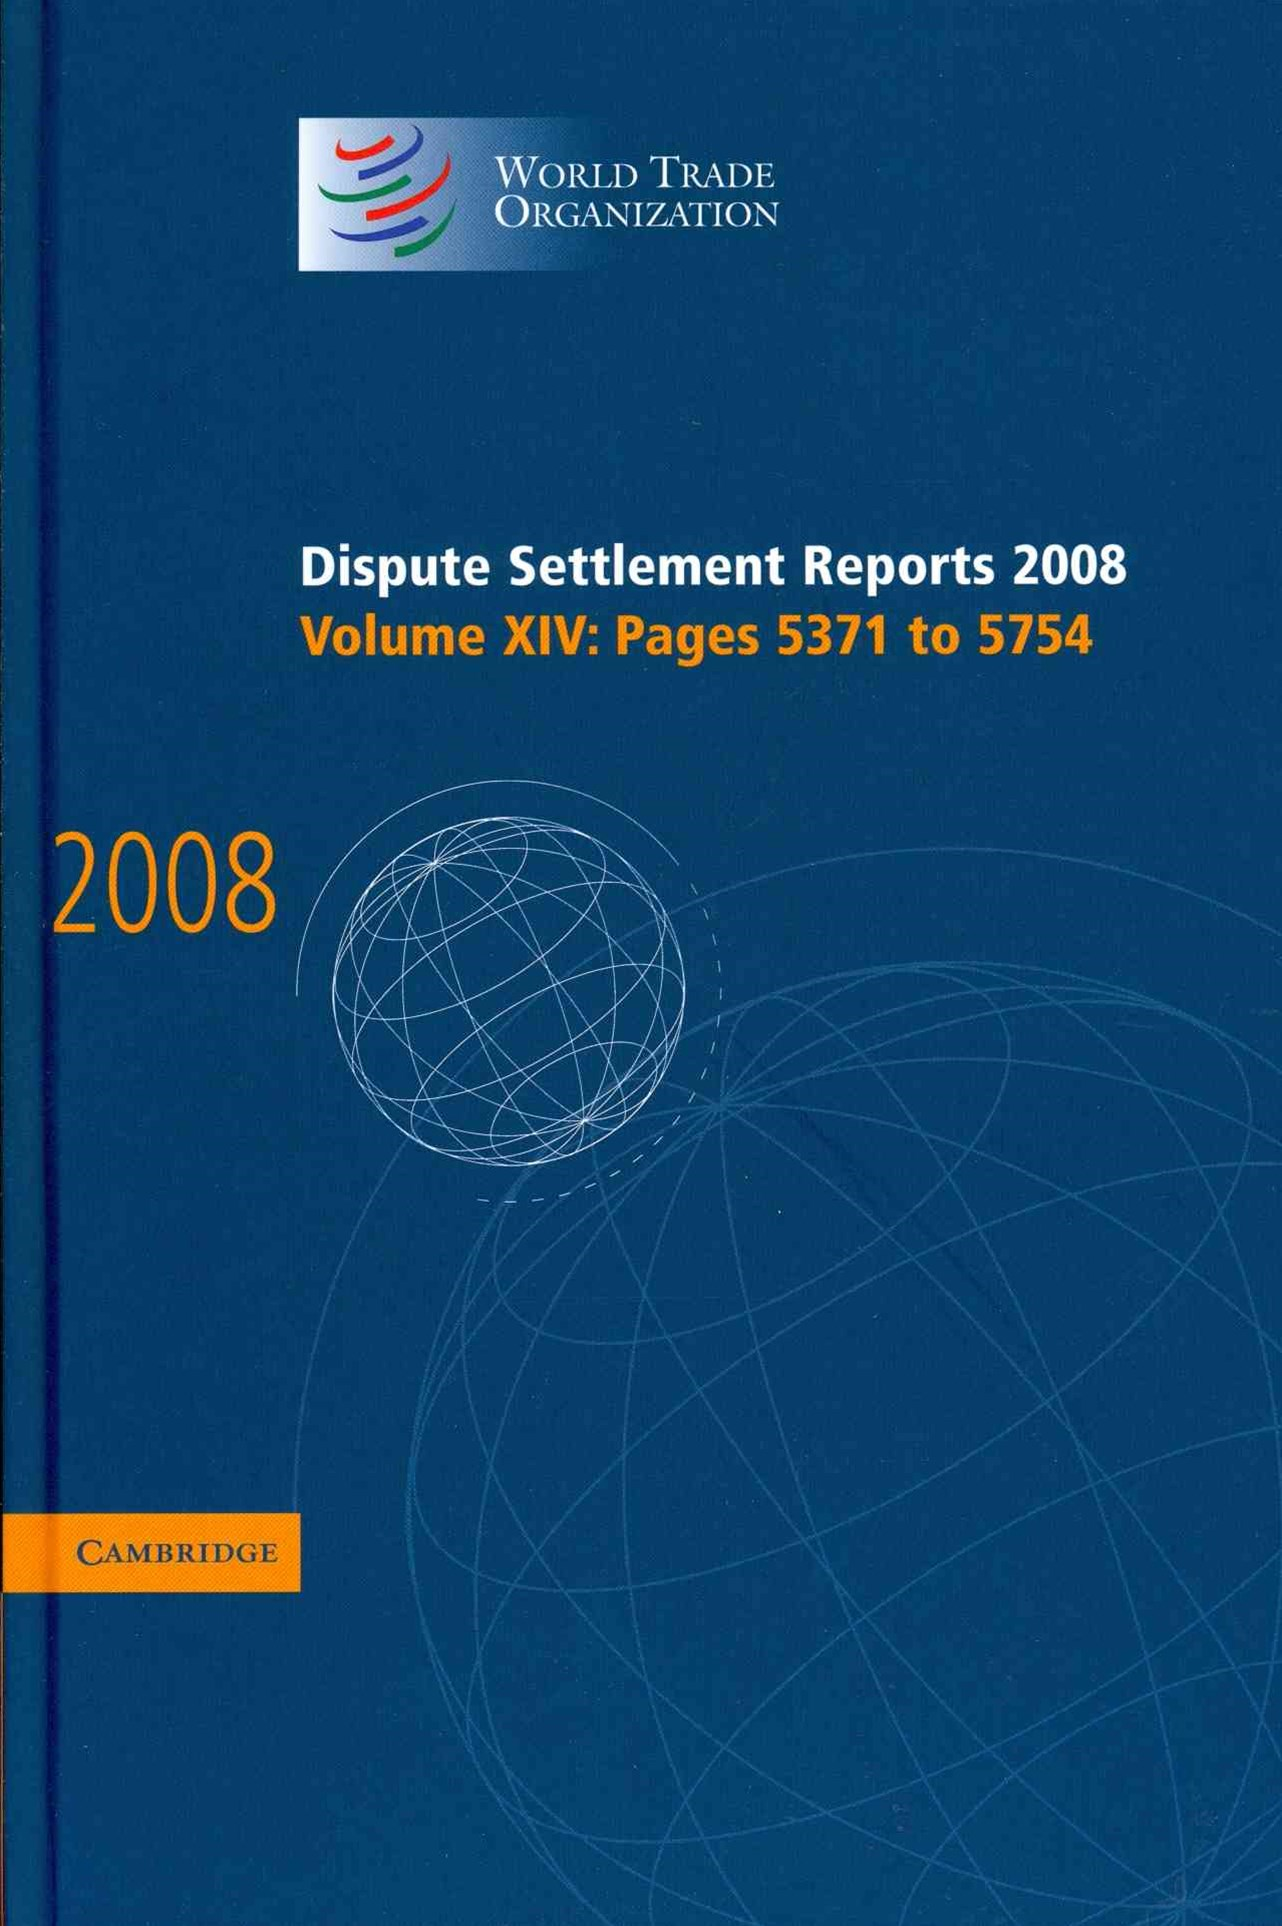 Dispute Settlement Reports 2008: Volume 14, Pages 5371-5754